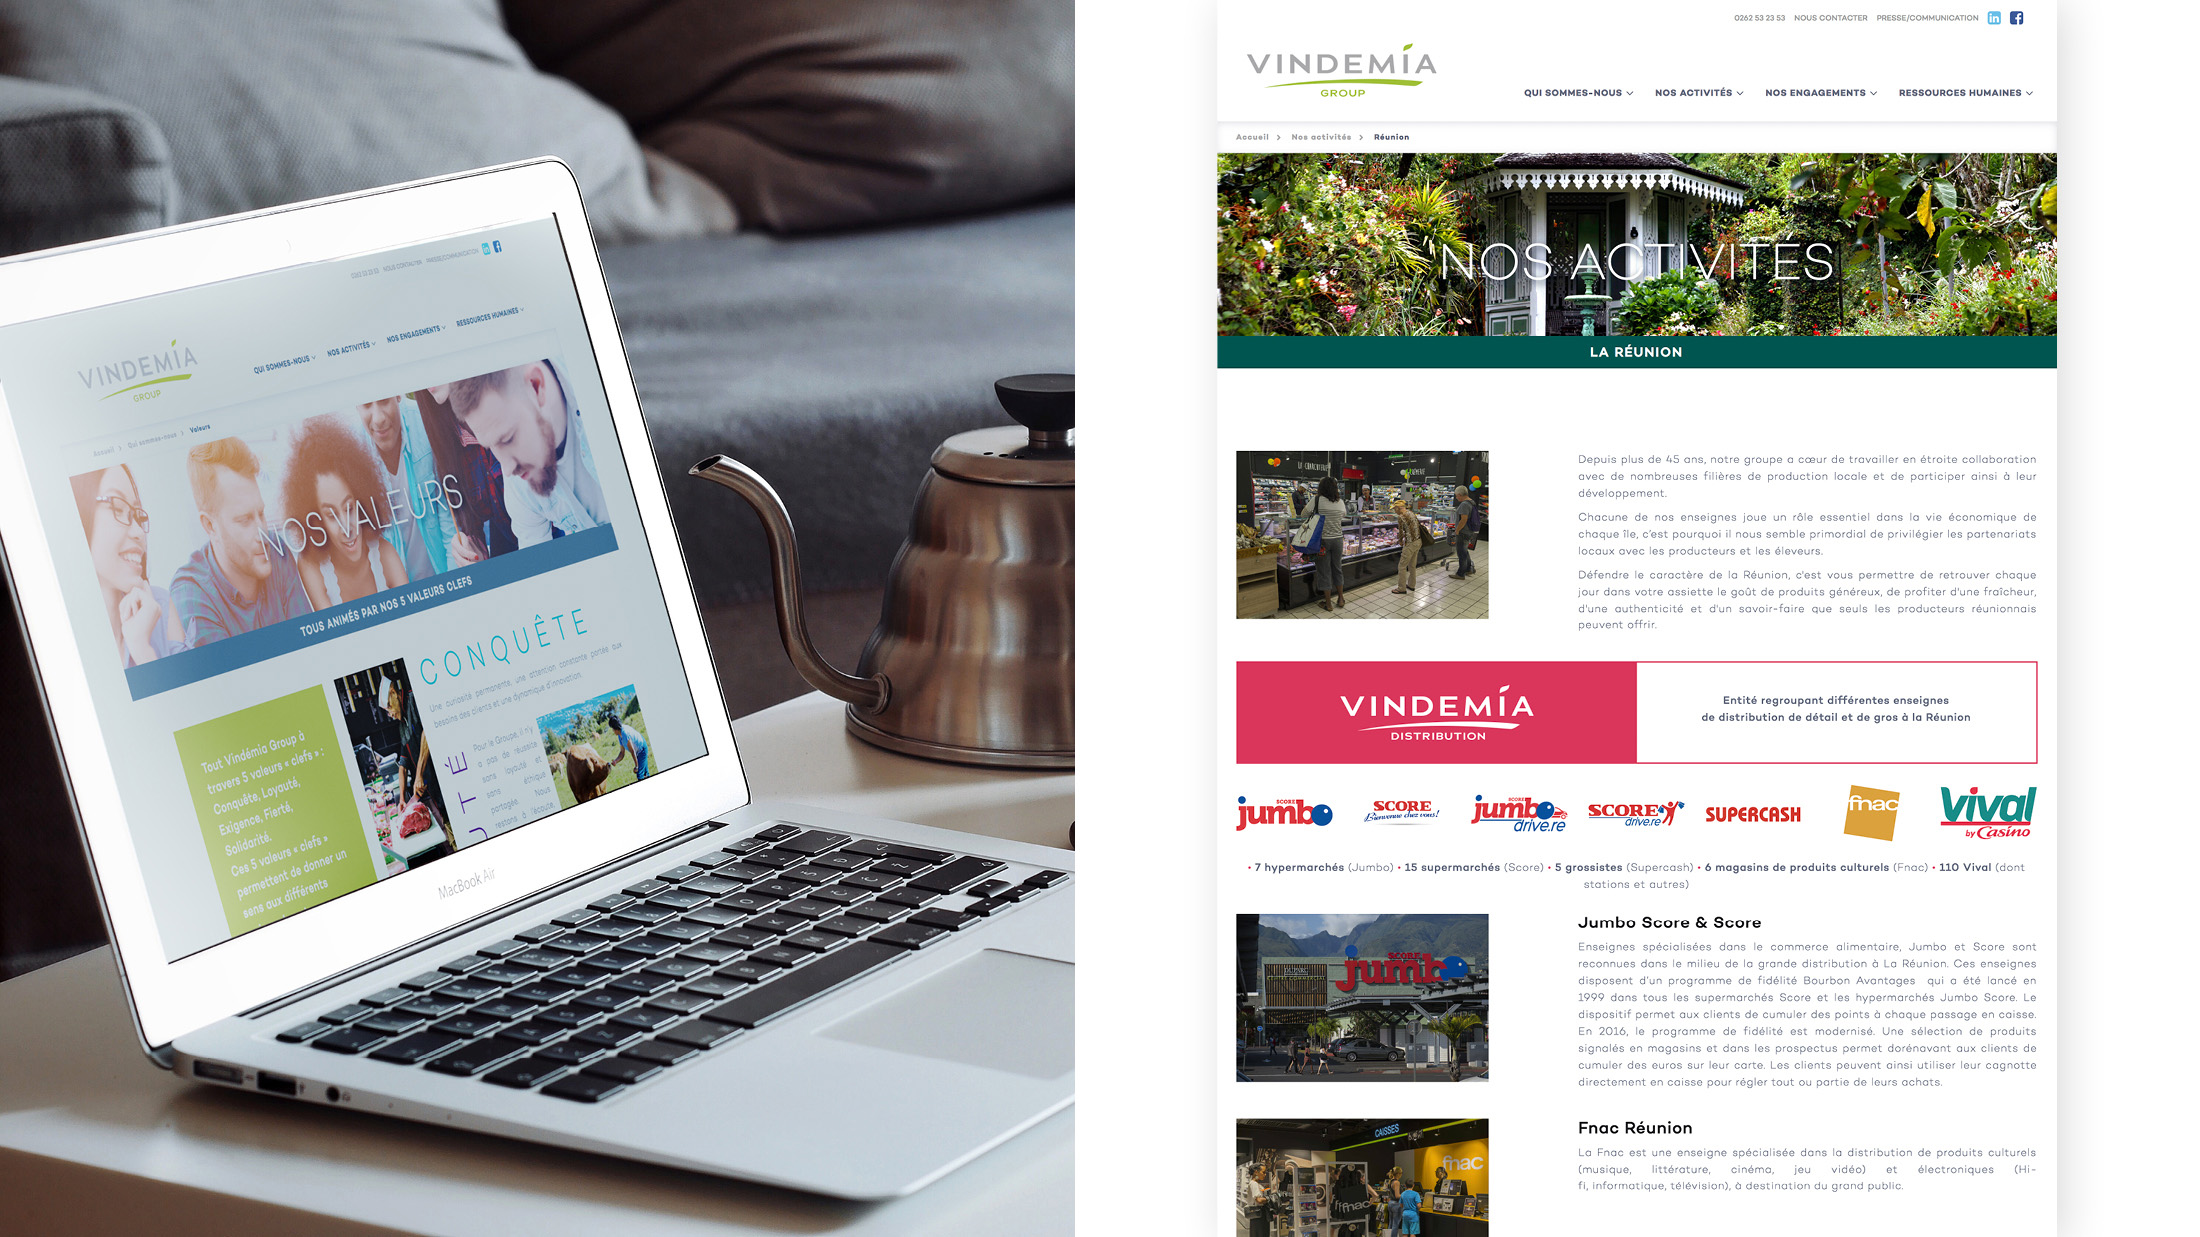 ZOORIT_SITEWEB_DIGITAL_MOCKUP_VINDEMIA_02